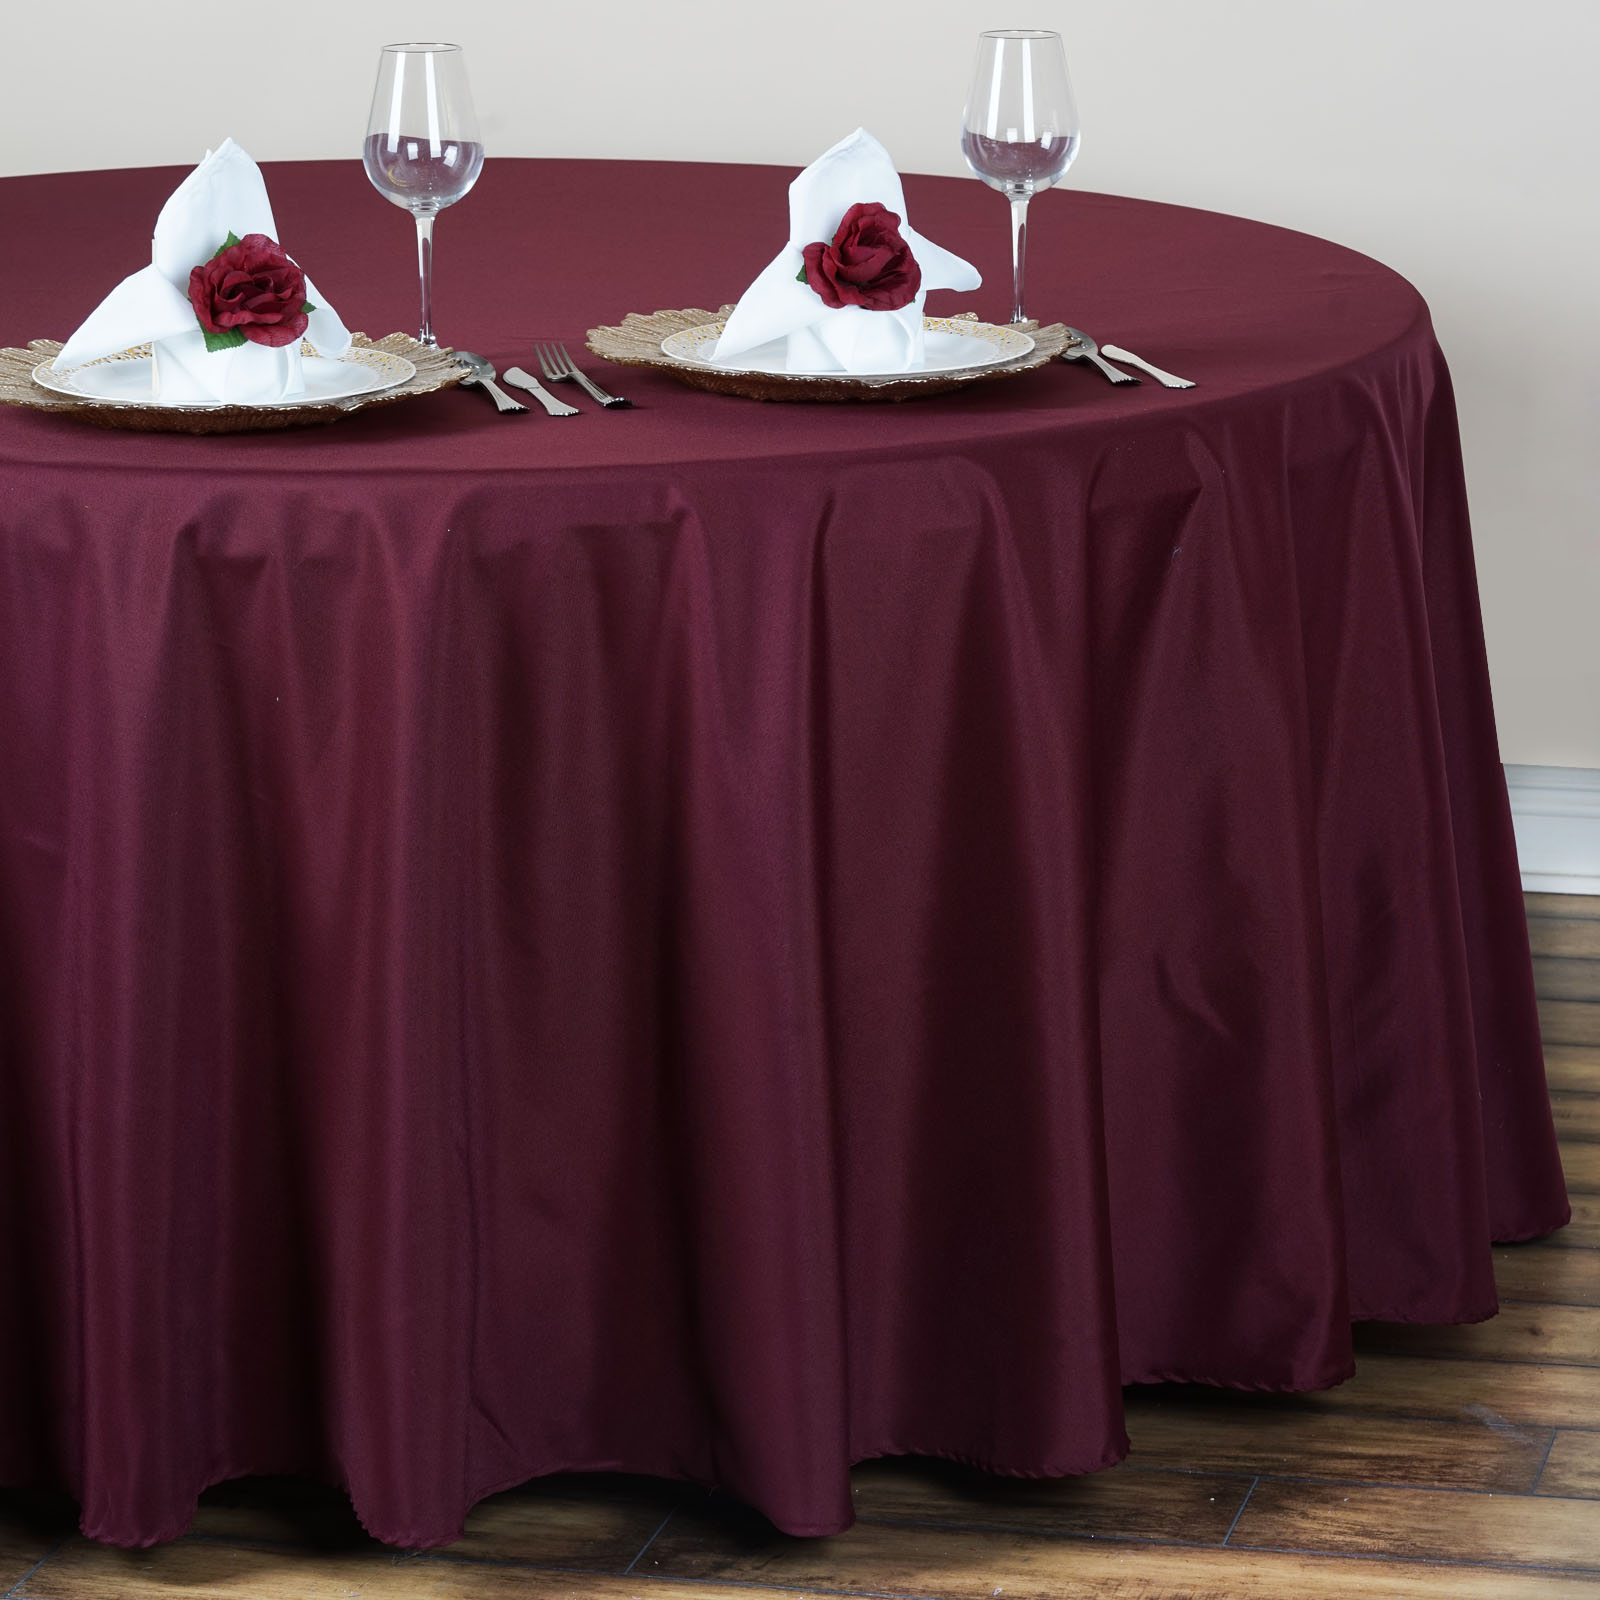 15 pcs Wholesale Lot 120quot ROUND POLYESTER TABLECLOTHS Fine  : tab120burg02 from www.ebay.com size 1600 x 1600 jpeg 238kB